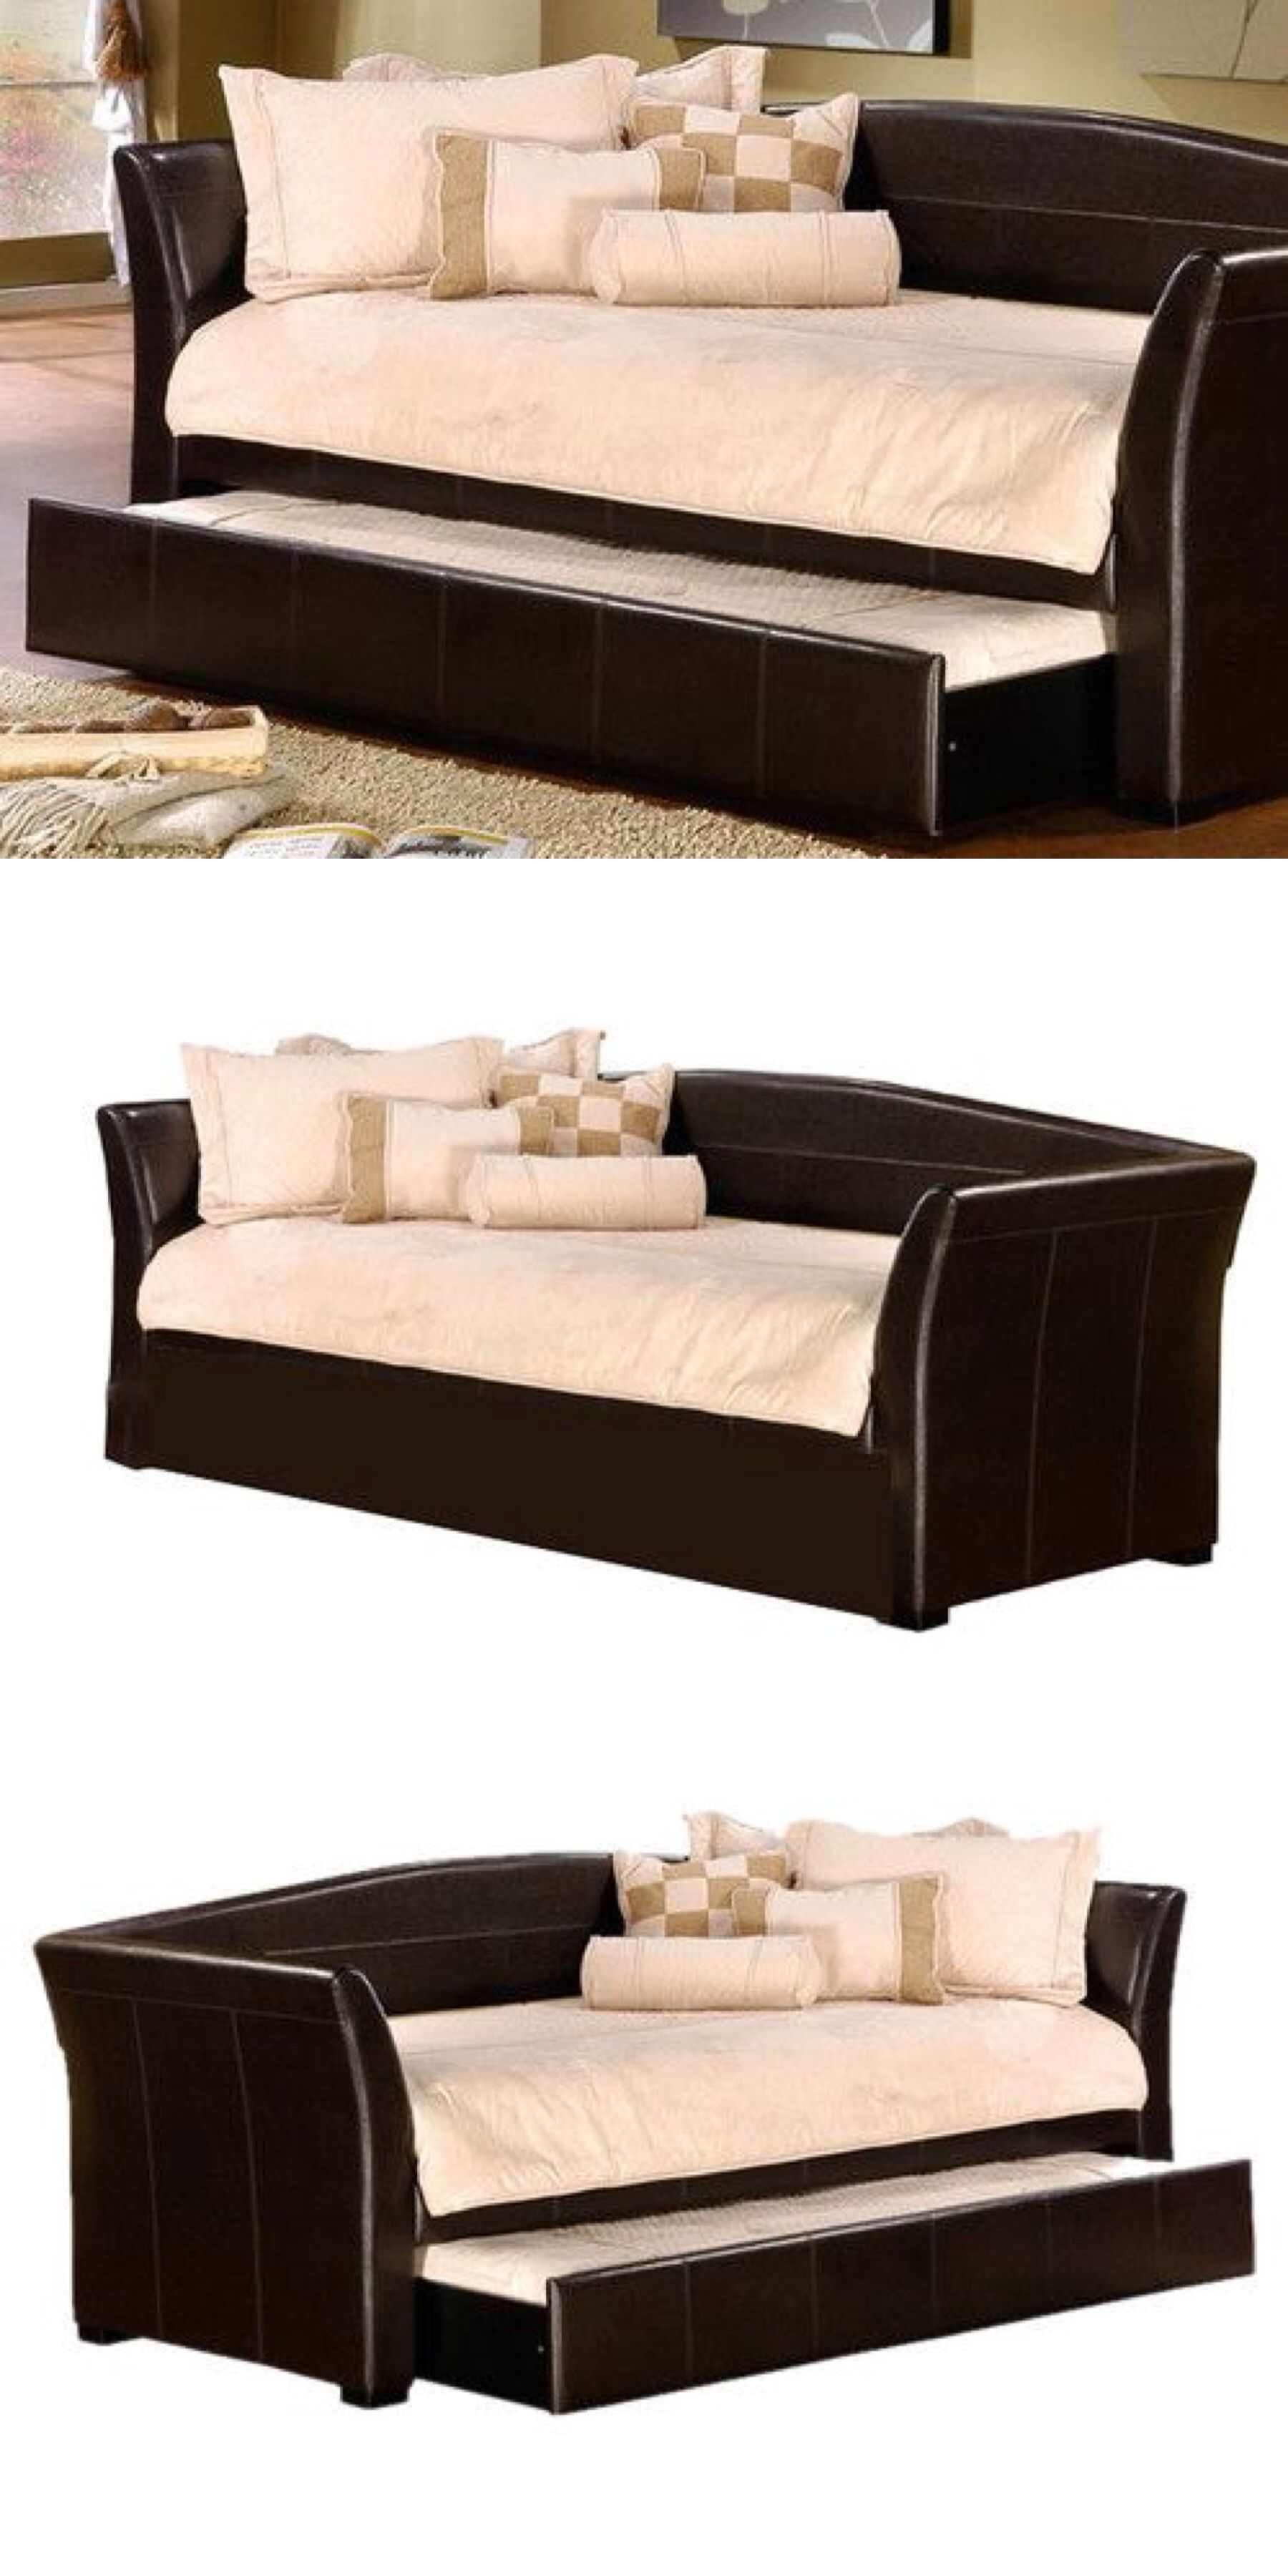 Day Bed Sofa With Pull-out Trundle Bed - Great Space Saving Idea | Furniture